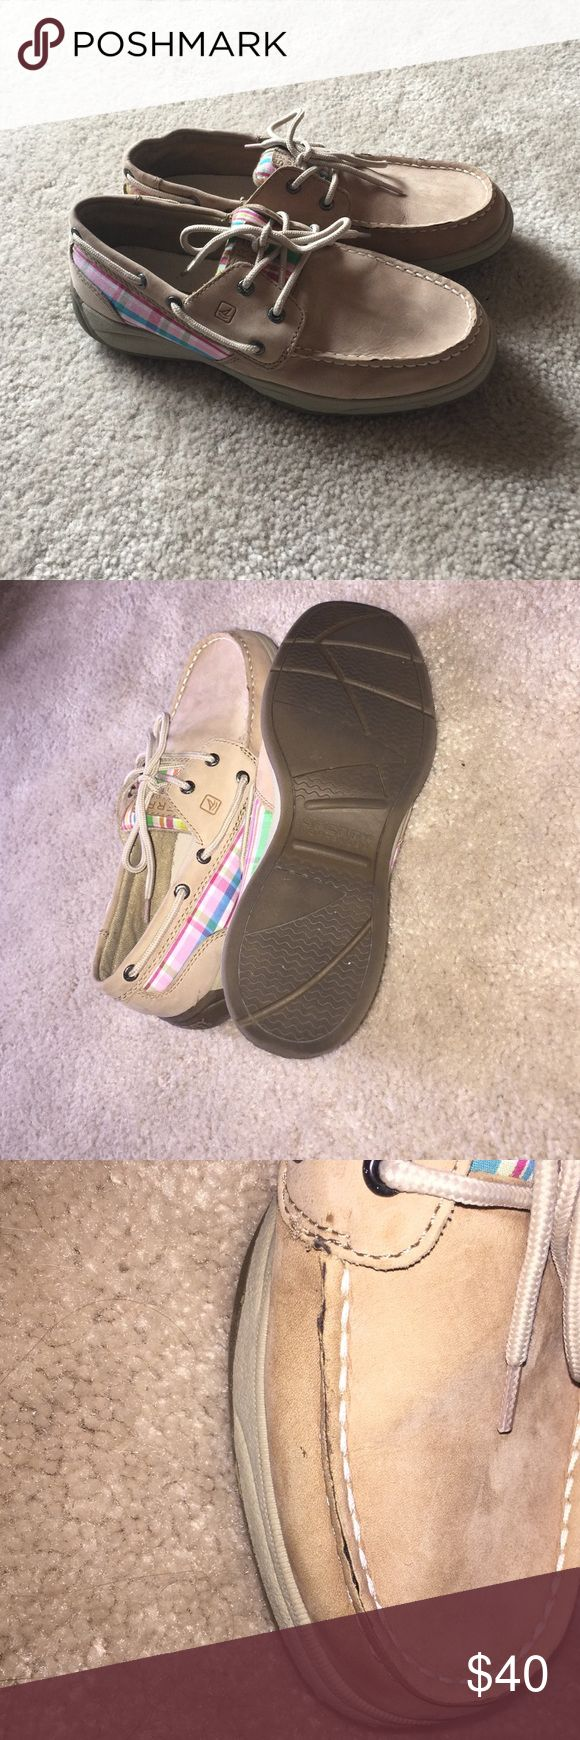 💕Sperry Top Siders Make an Offer Super cute sperrys. Size 6. See pictures! Make an offer Sperry Top-Sider Shoes